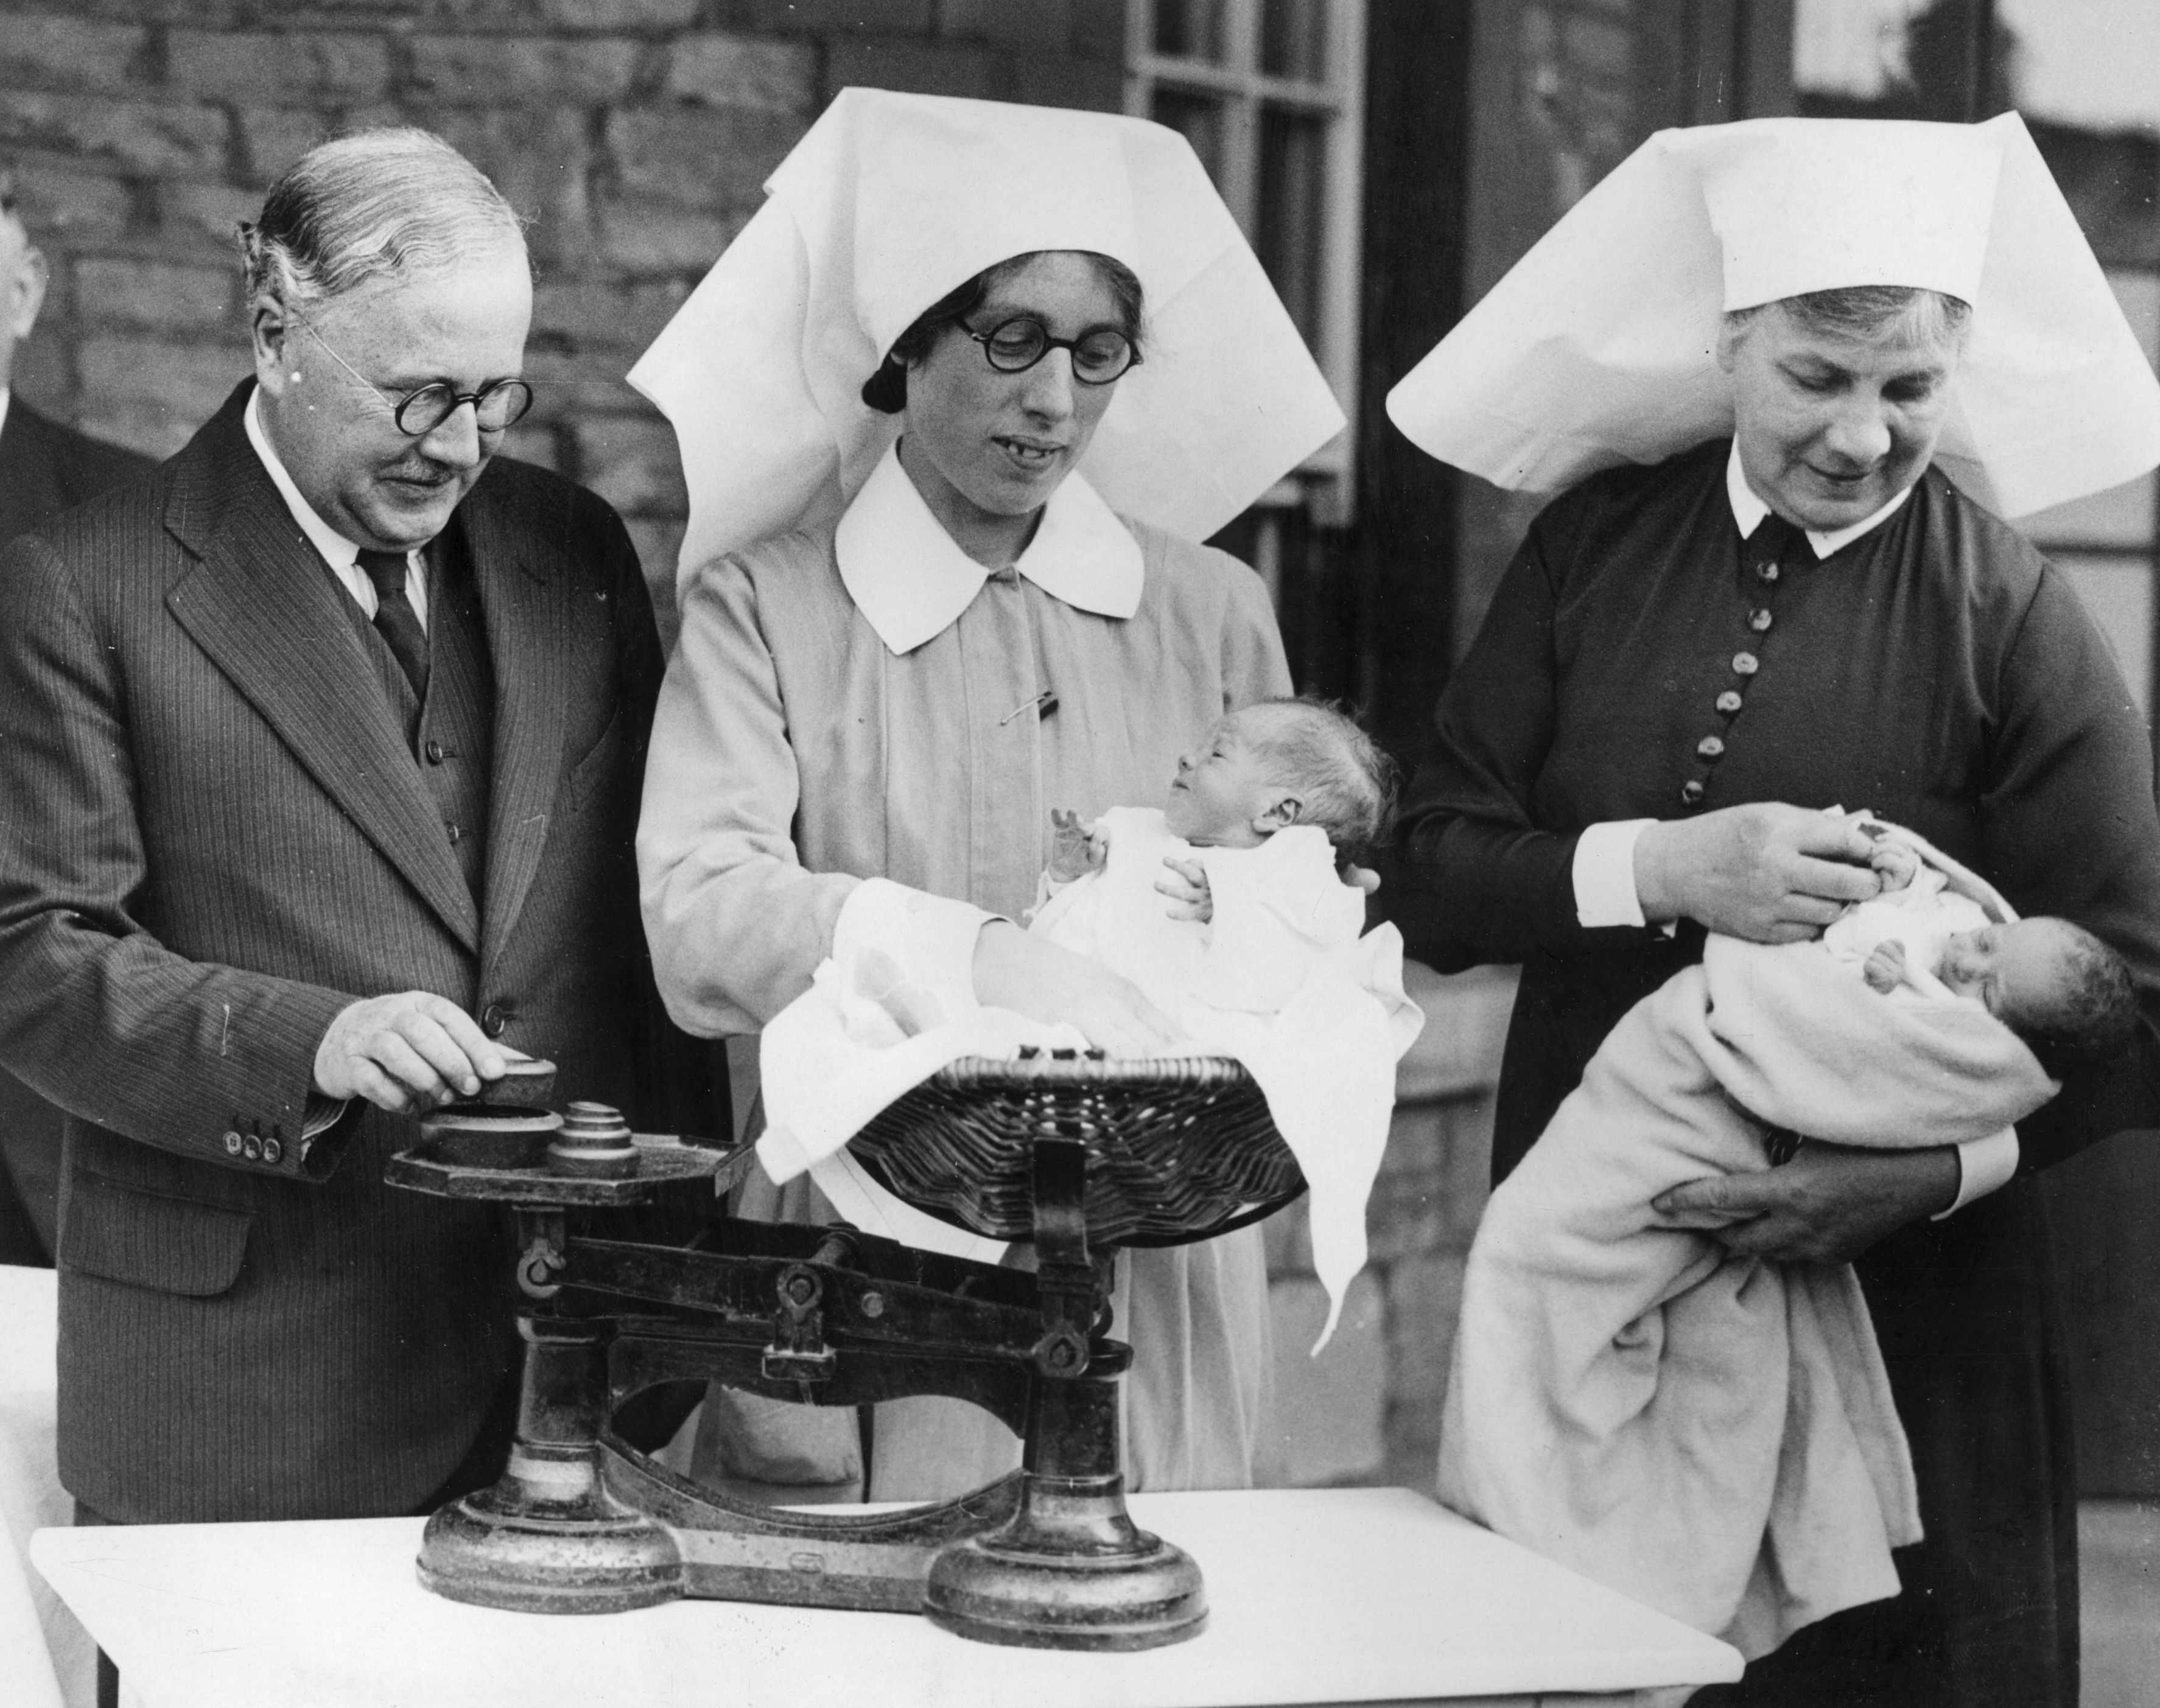 17th September 1936: The British minister of health, Sir Kingsley Wood, watches nurses weighing newborn twins during a visit to Southmead Hospital in Bristol to see the work local authorities were doing for the maintenance and improvement of health and housing conditions. (Photo by Fox Photos/Getty Images)